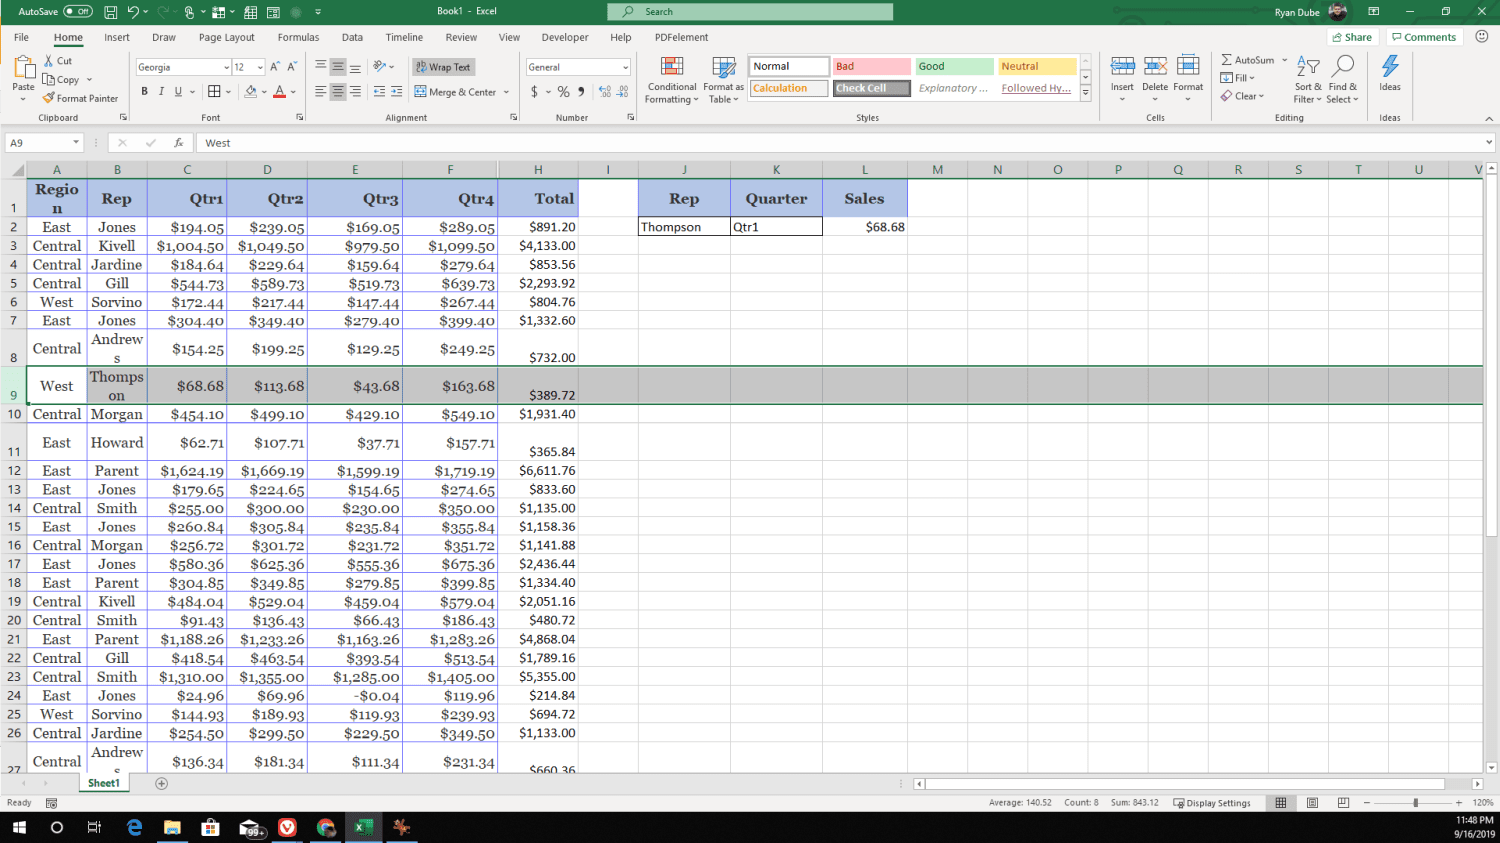 Screenshot of XLOOKUP column and row search results